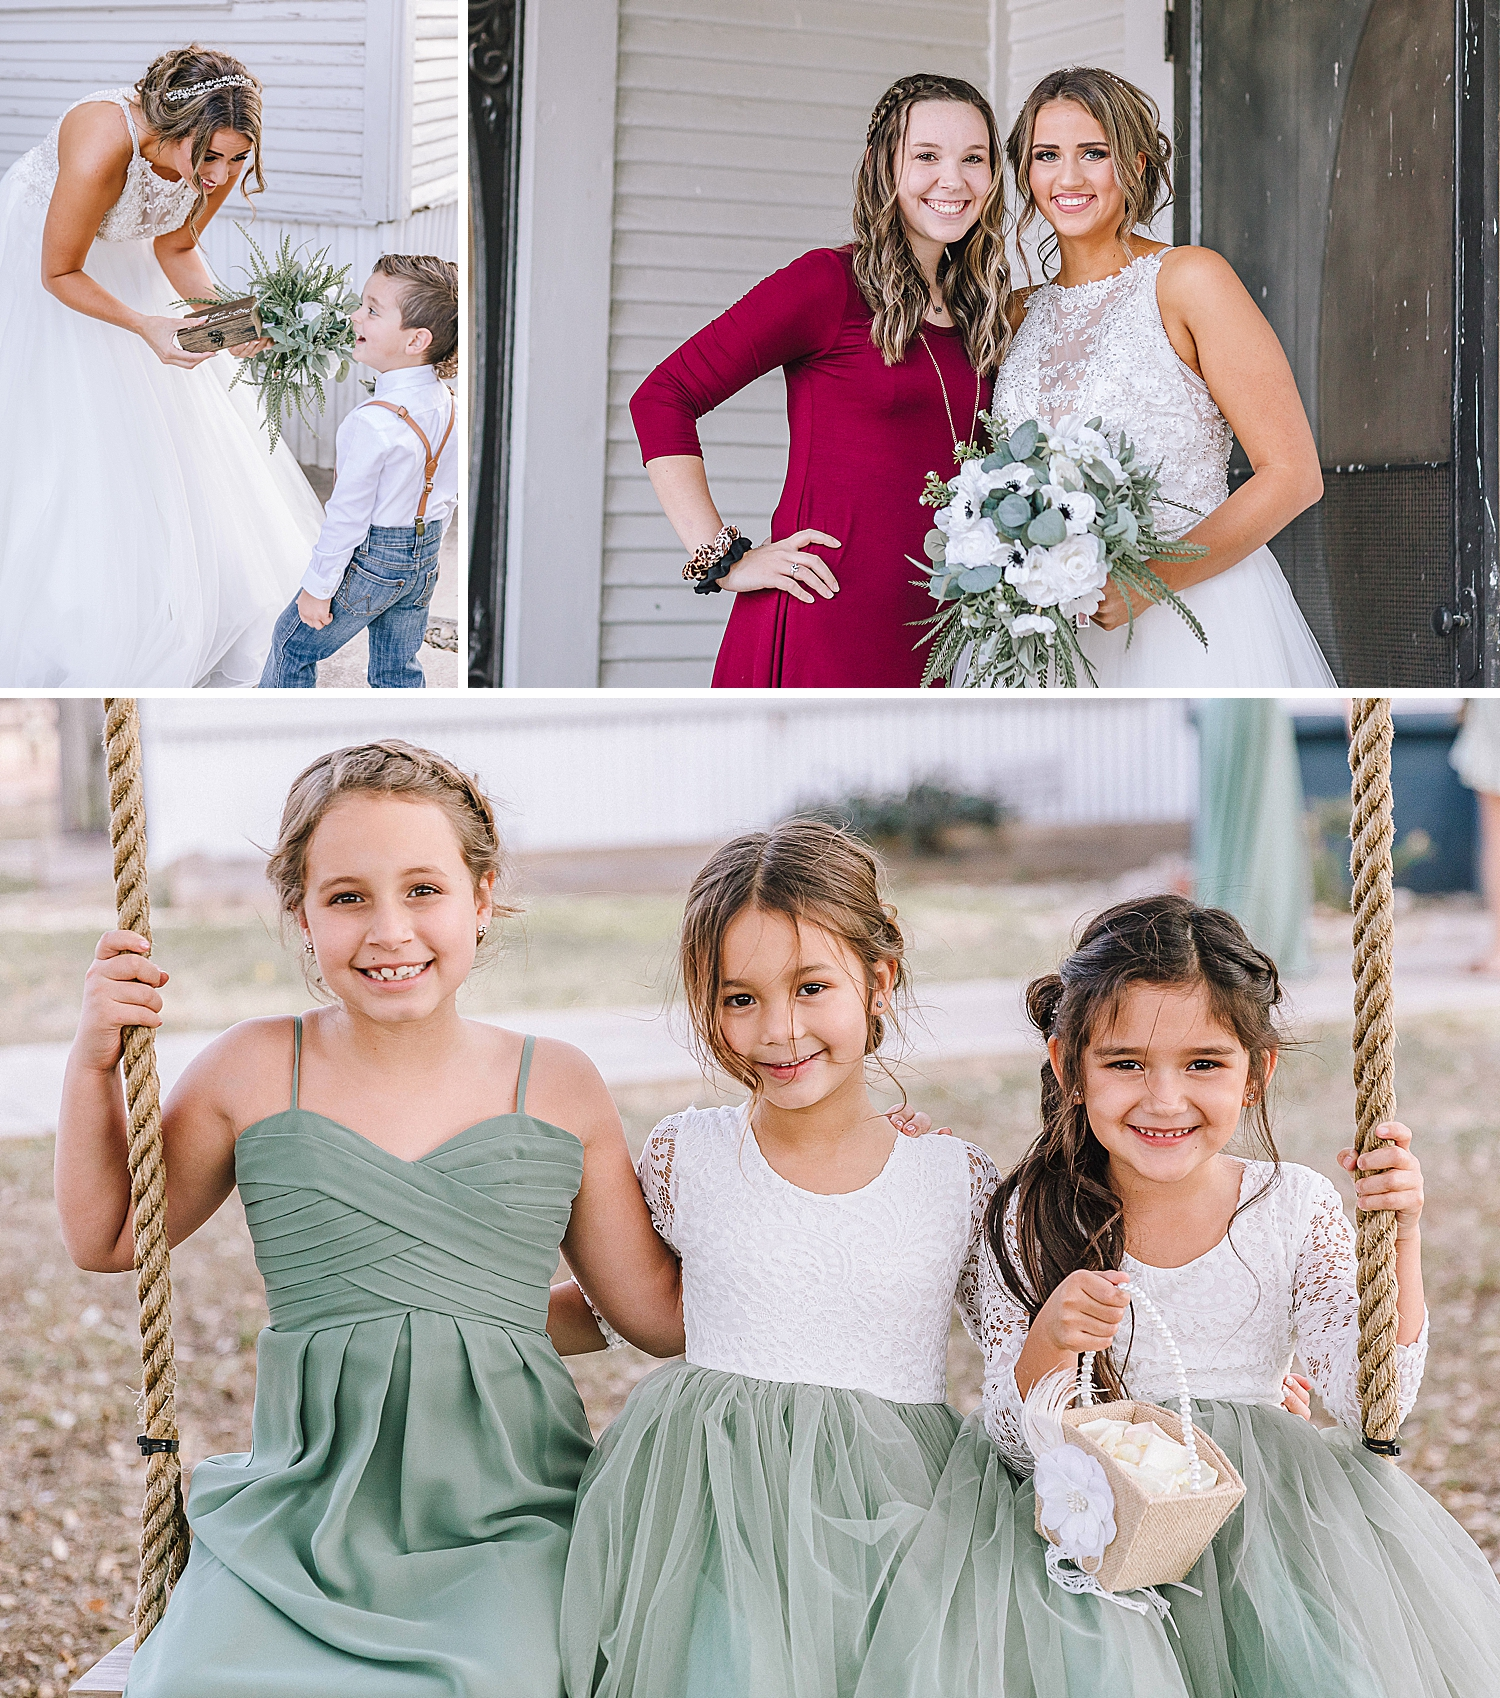 Allen-Farmhaus-New-Braunfels-Wedding-Carly-Barton-Photography_0023.jpg